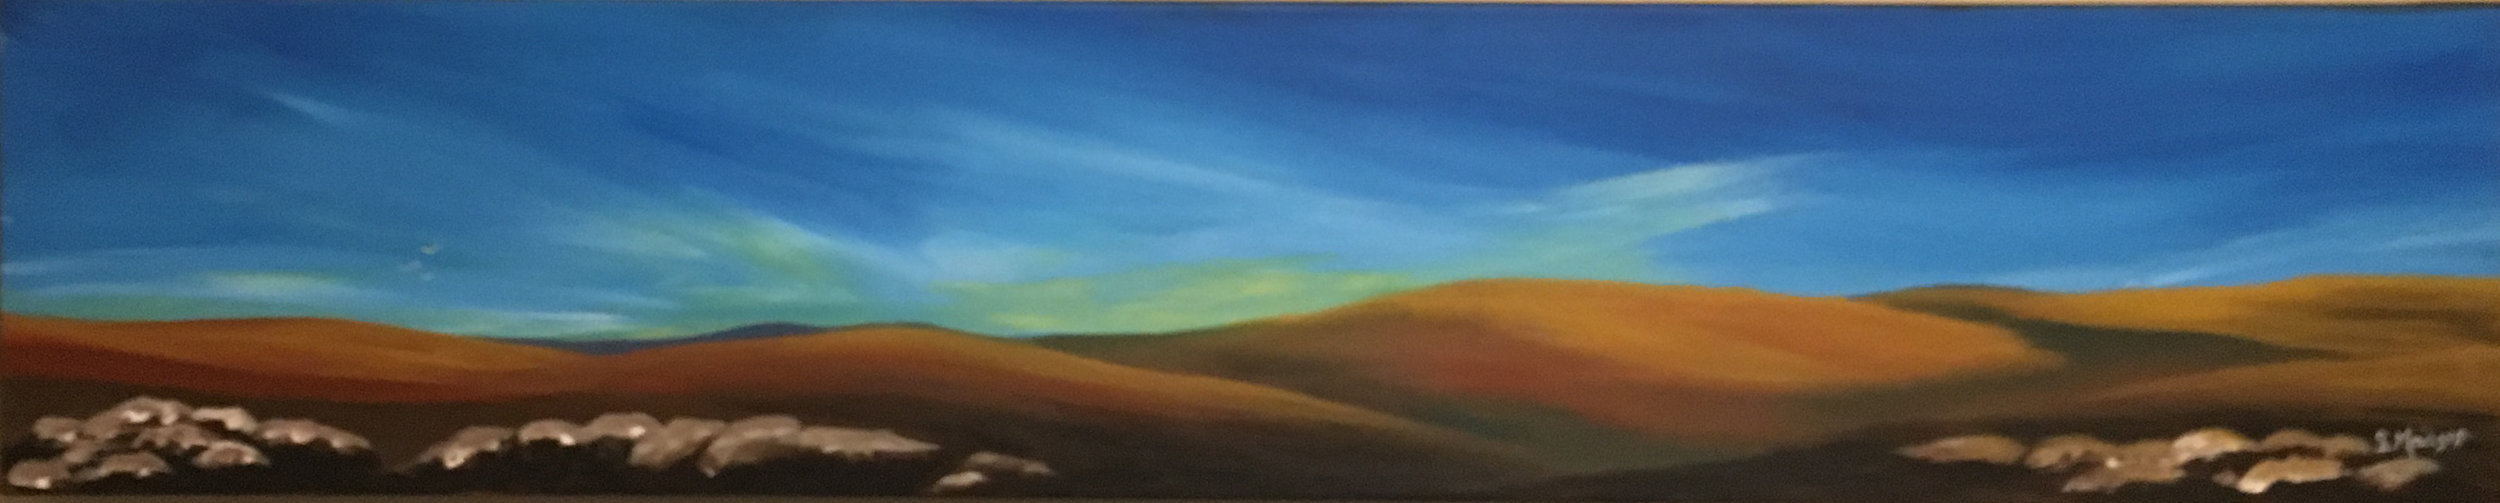 love for the prairie skies - private collection